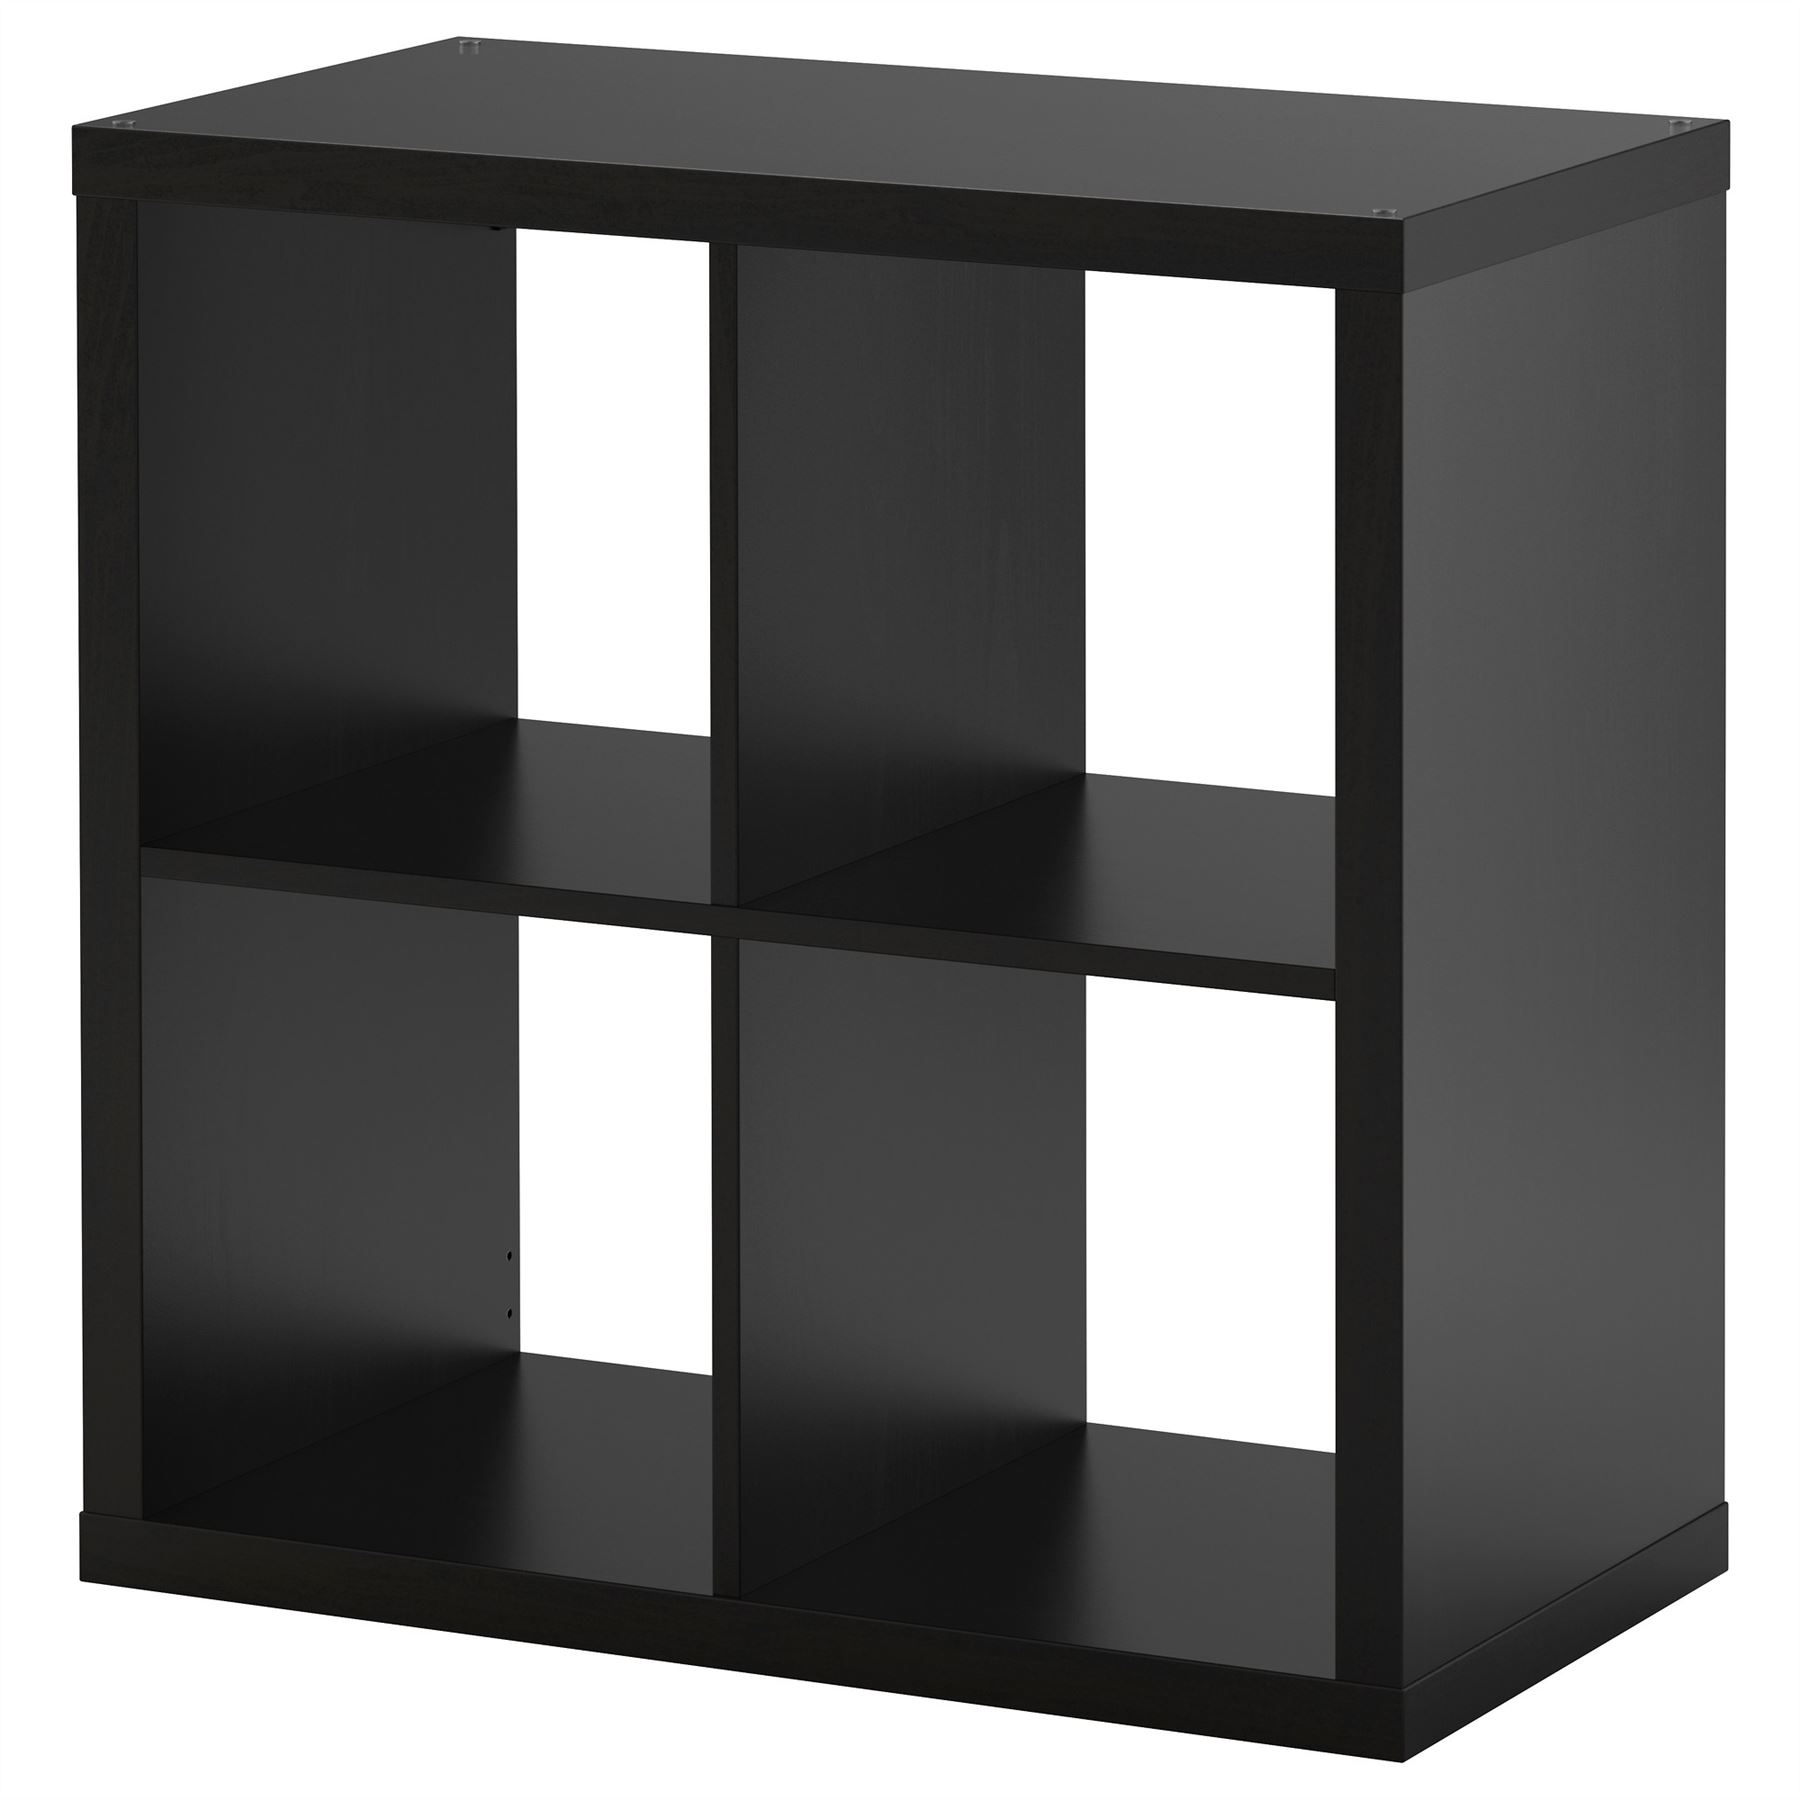 Ikea kallax 4 cube storage bookcase square shelving unit for Ikea box shelf unit